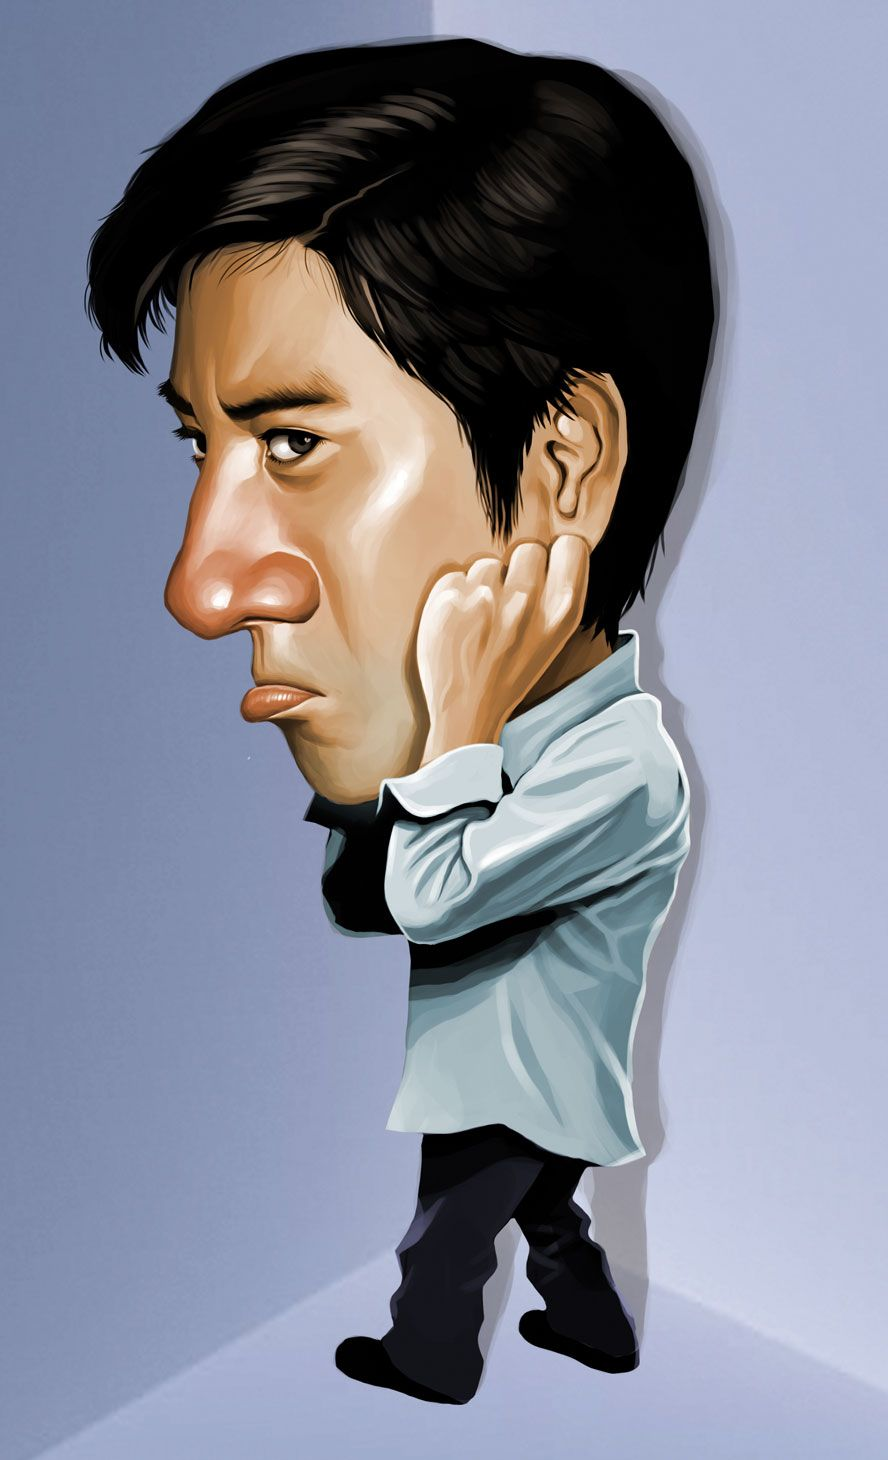 Wang Lee Hom Caricature